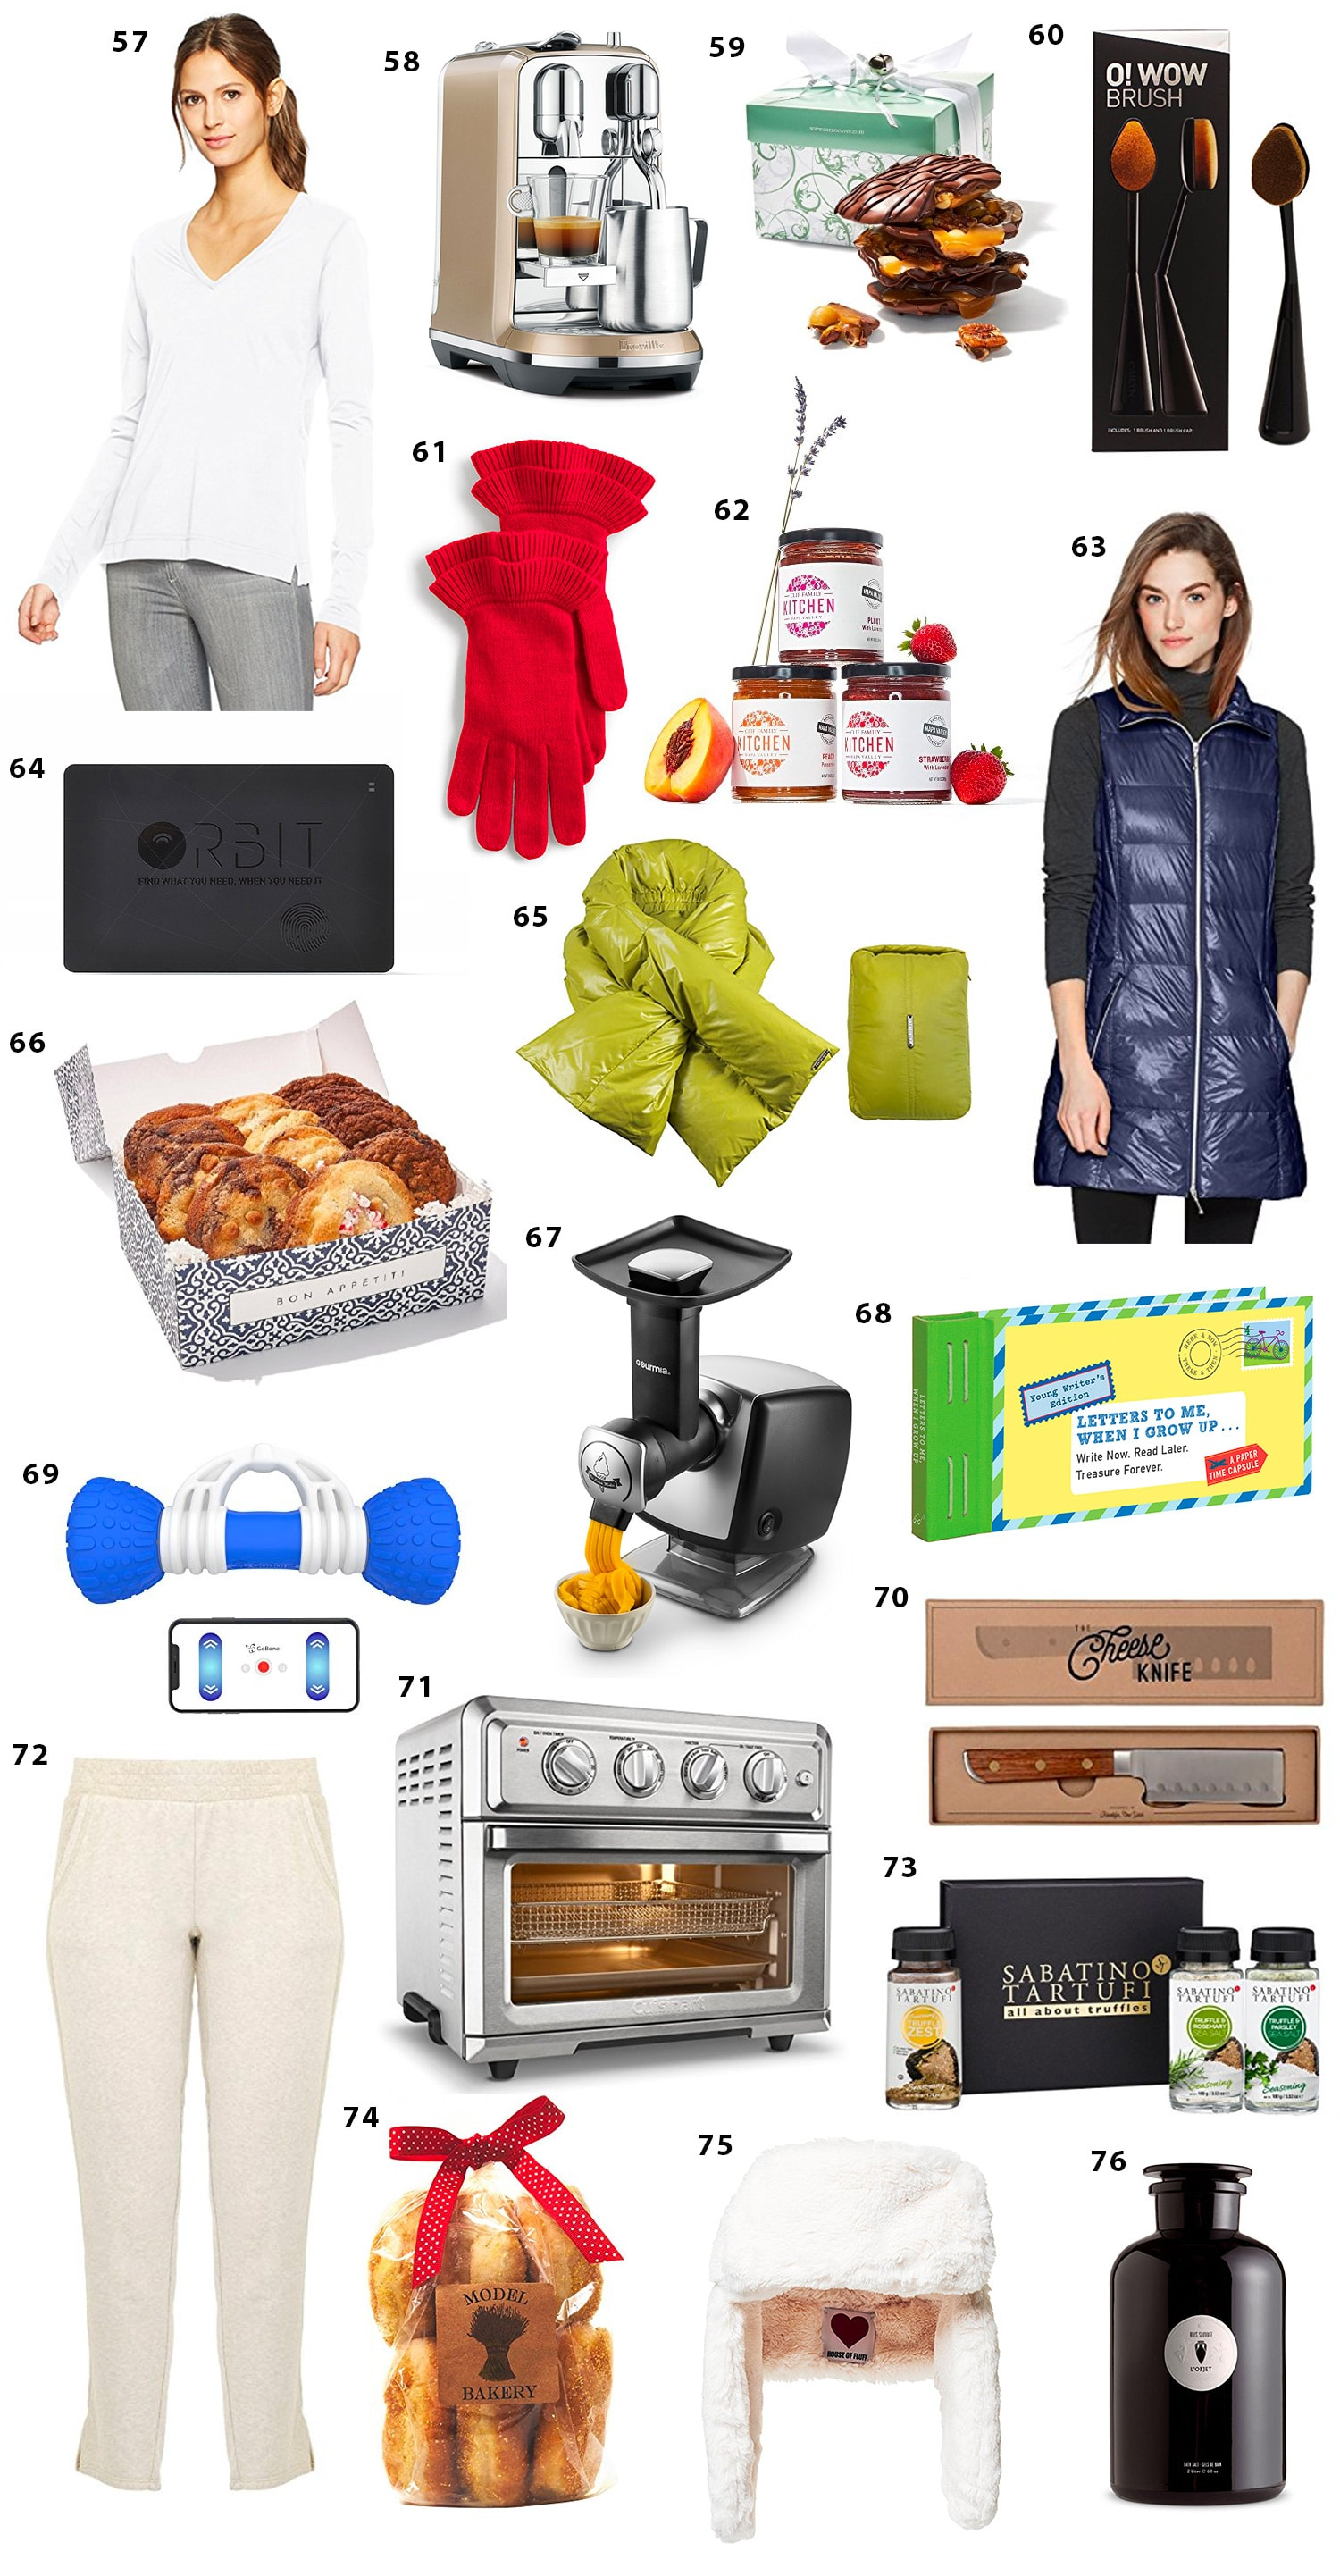 Oprah's favorite things episode shopping gift ideas for holidays Ashley Brooke Nicholas blogger